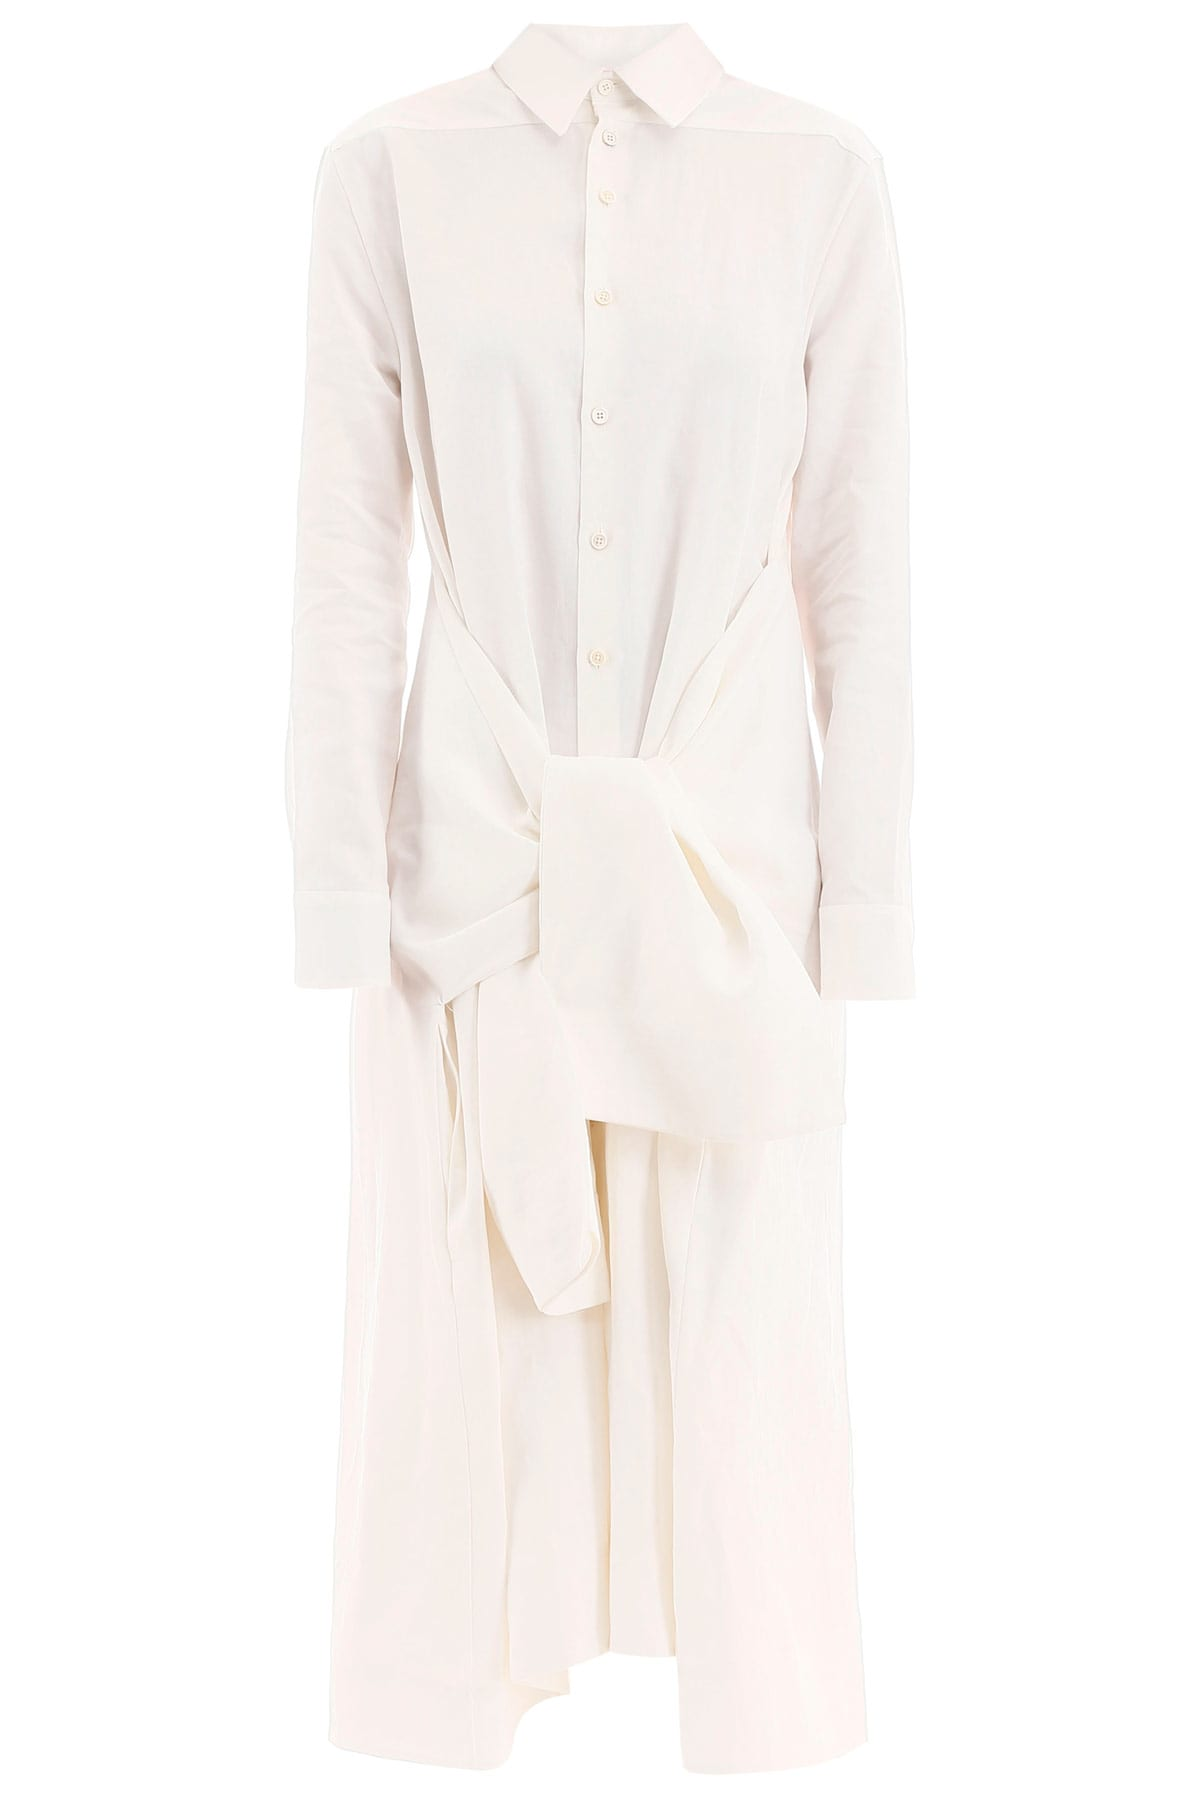 Buy Jil Sander Dress With Knot online, shop Jil Sander with free shipping